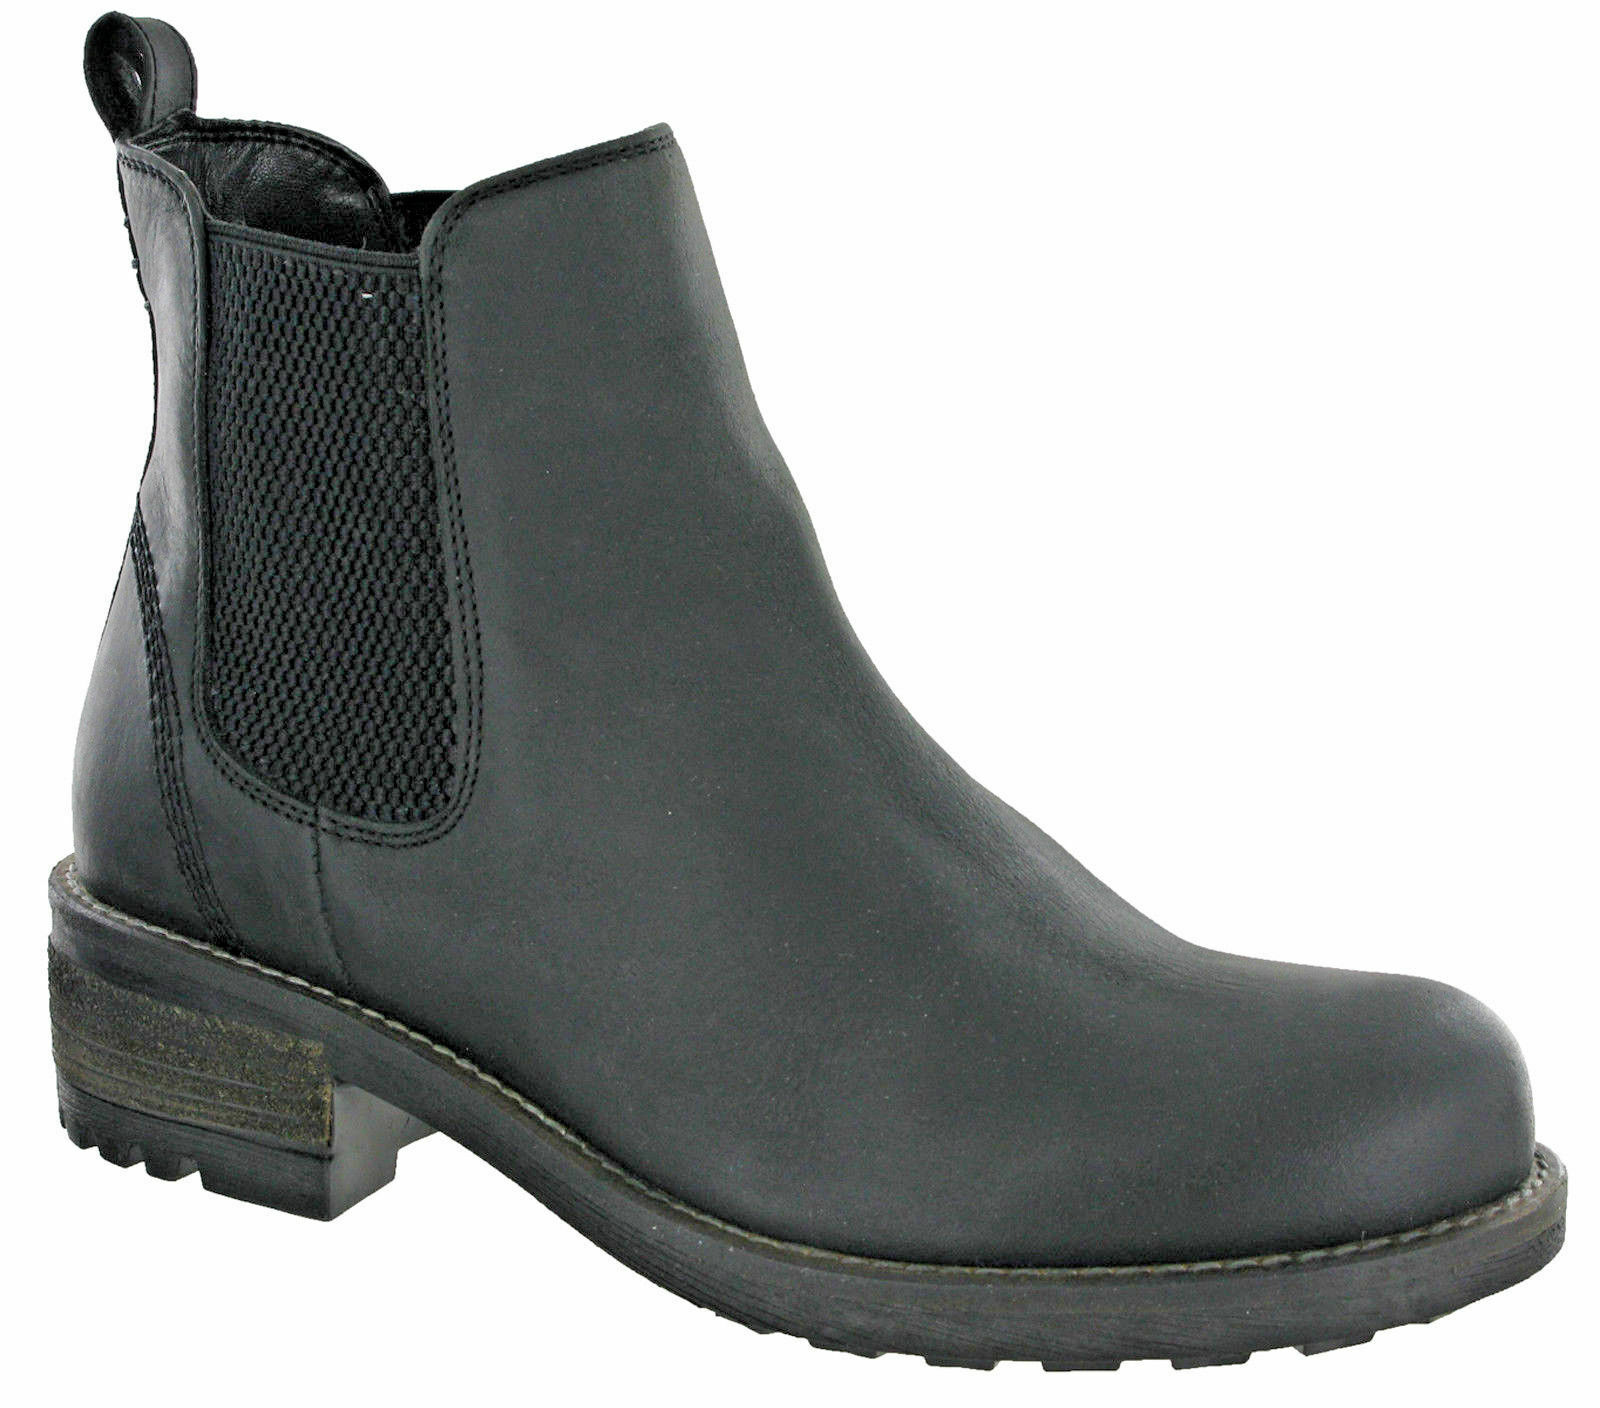 Cipriata Chelsea Leder Dealer Stiefel Stiefel Dealer Twin Gusset Horse Riding Pull On Damenschuhe afc069